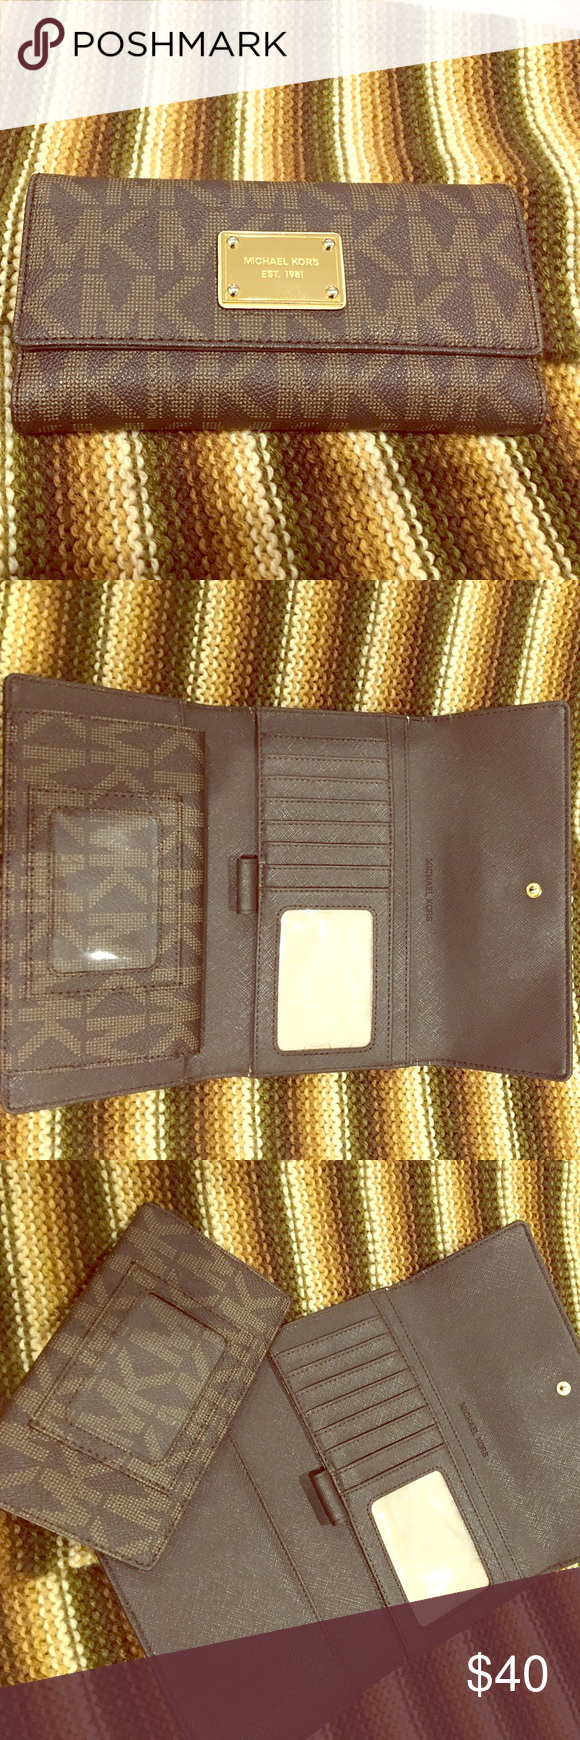 6bfced8083f1b6 MICHAEL Michael Kors Jet Set Checkbook Logo Wallet Wallet with checkbook  cover. Used, some worn signs. Constructed from brown PVC. MK logo print and  ...